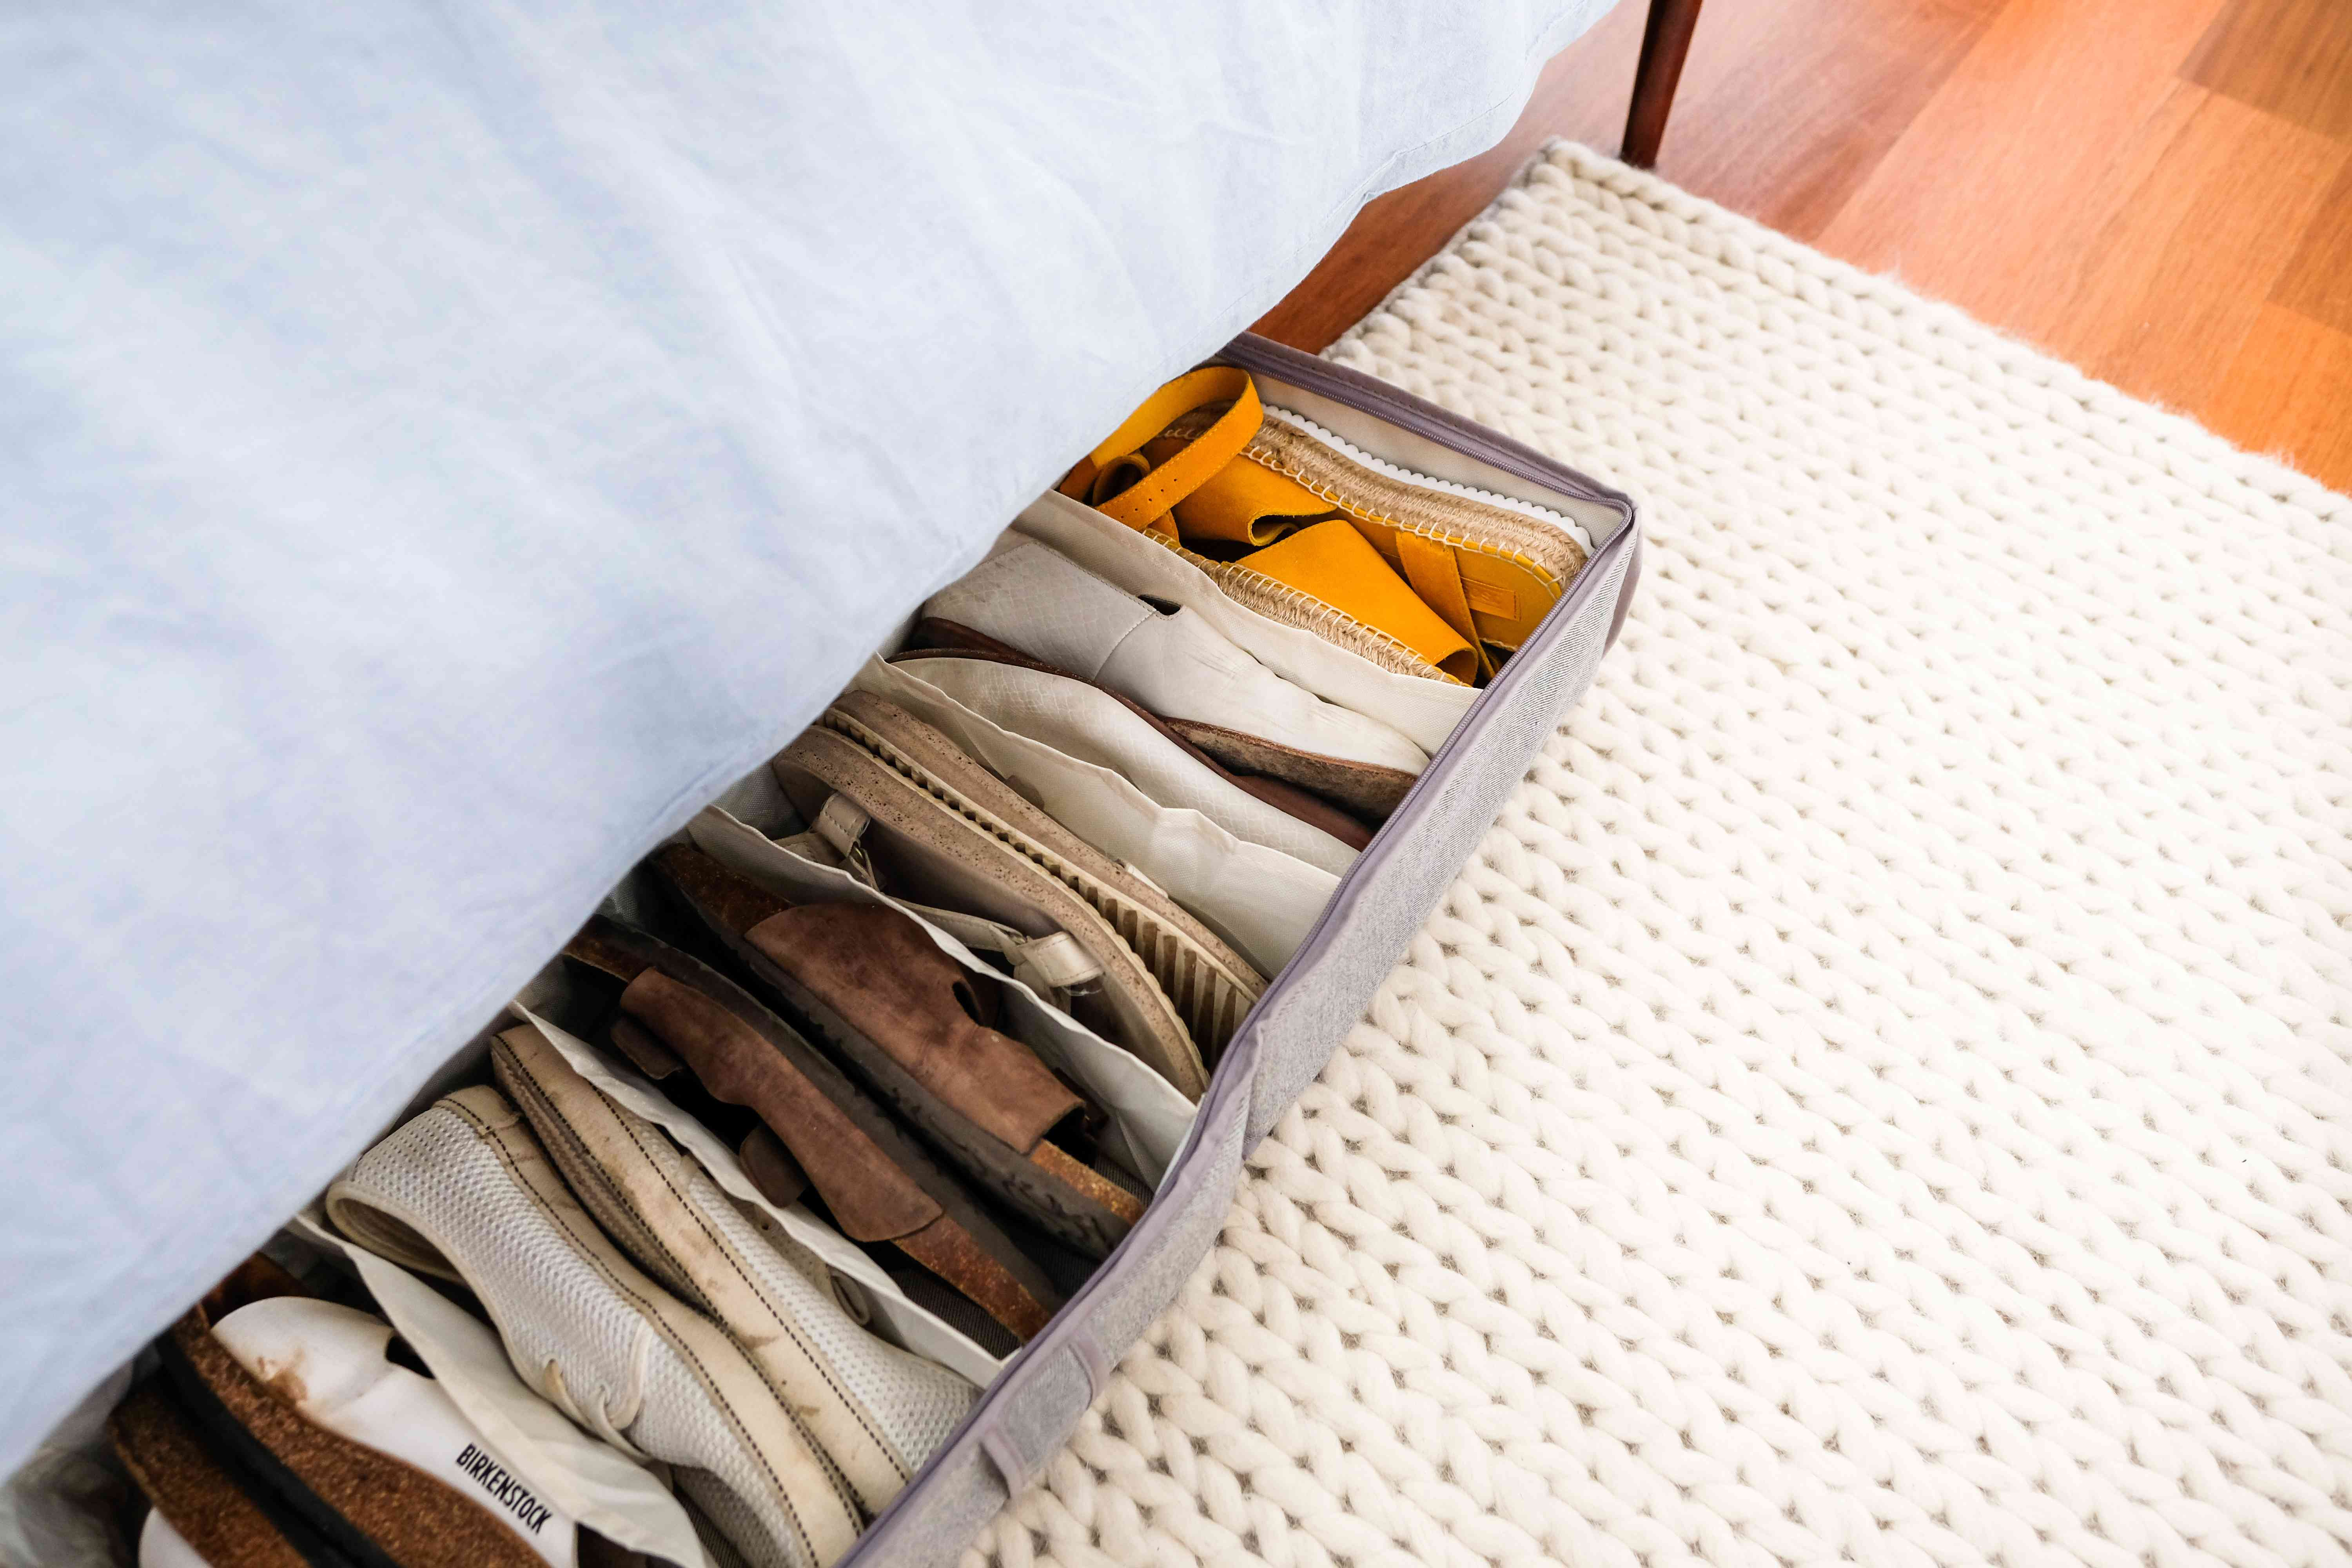 Storing shoes under the bed in a bin